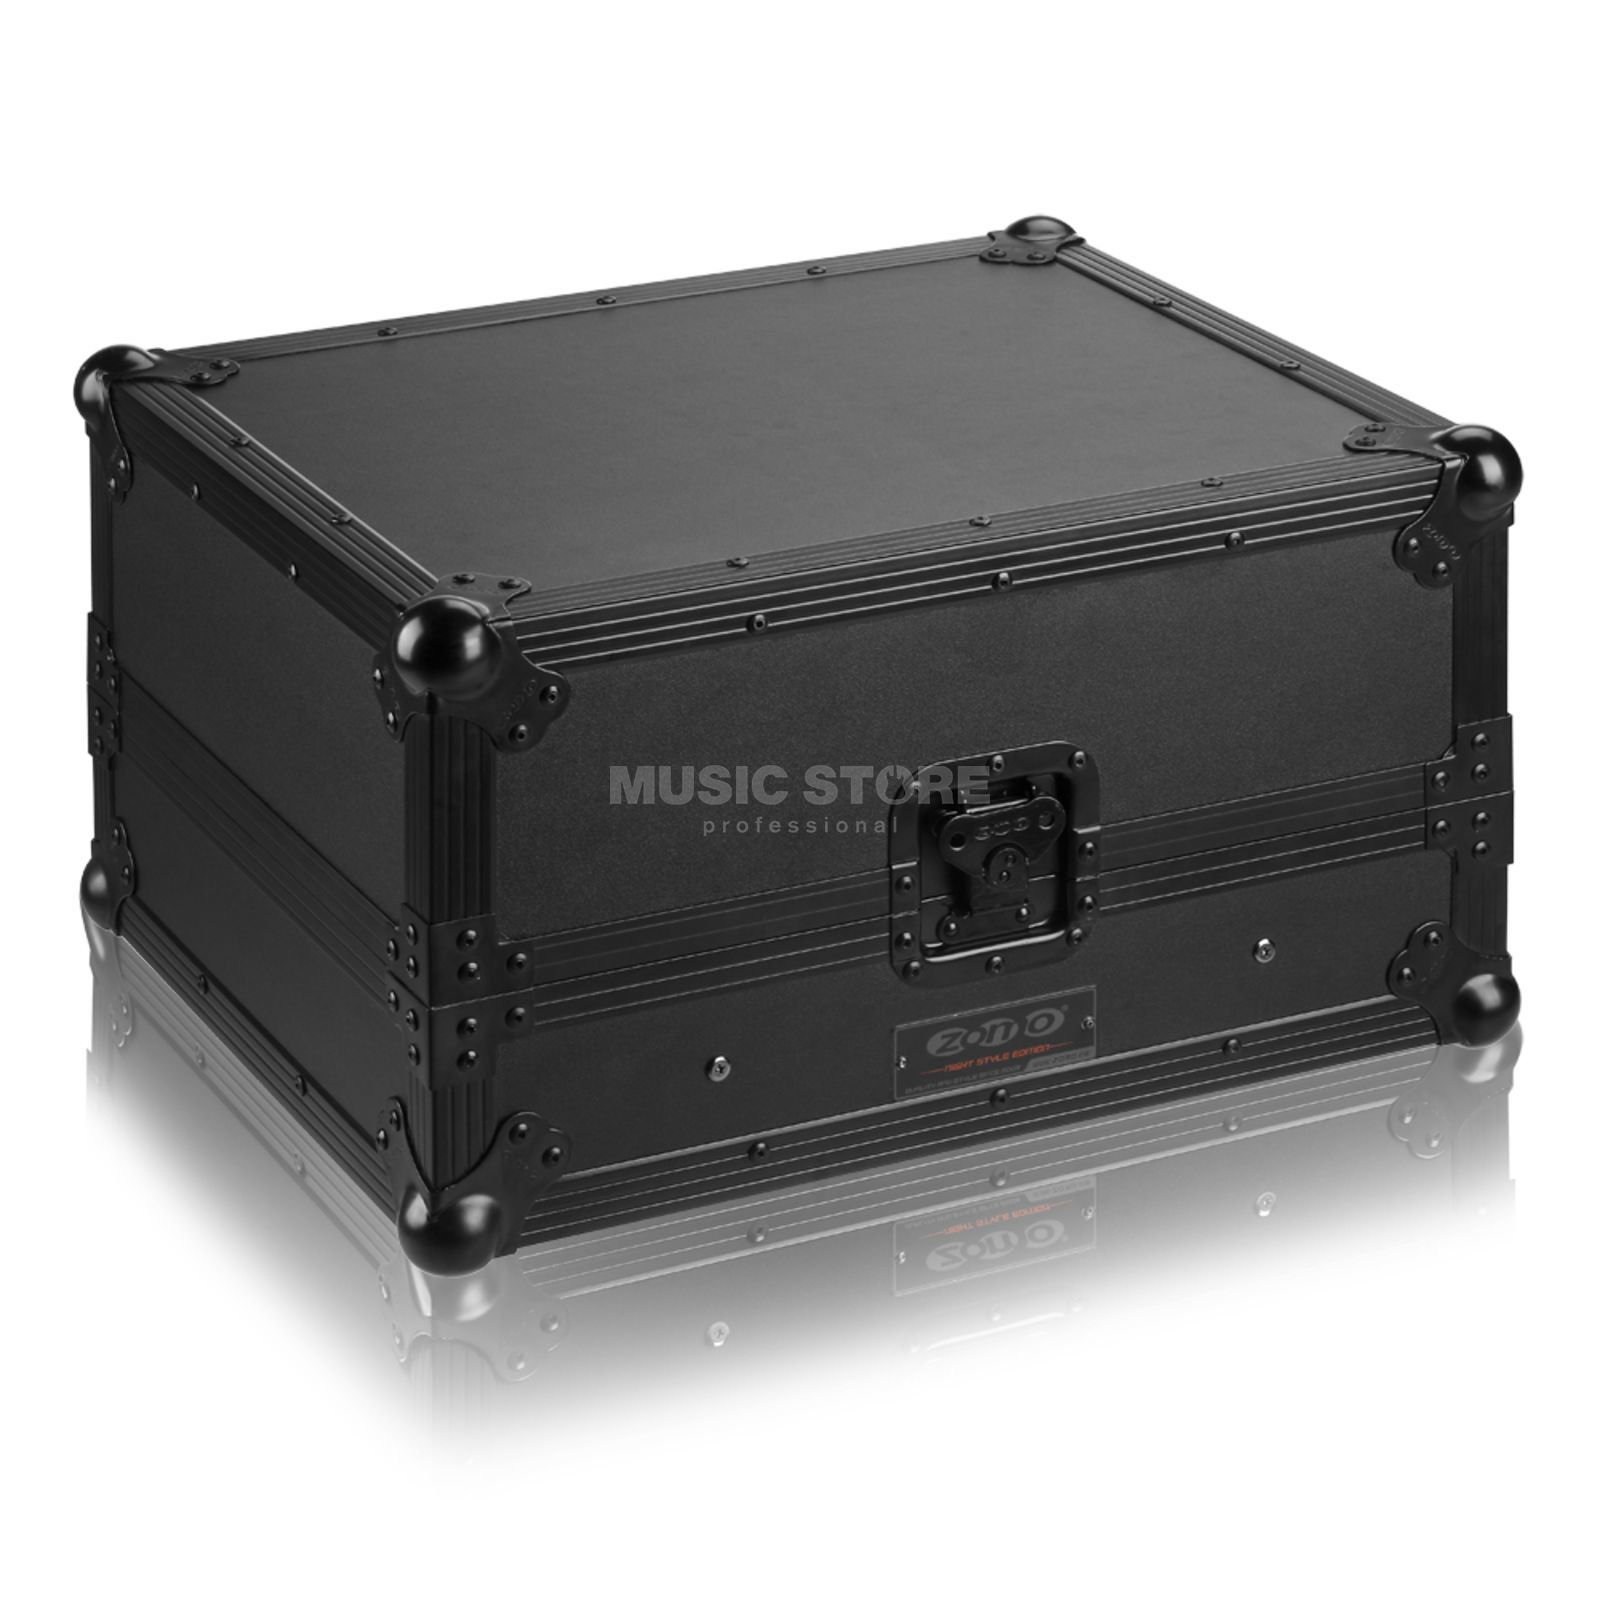 Zomo PM-900 Plus NSE Flightcase f. 1x Pioneer DJM-900 + Laptop Product Image